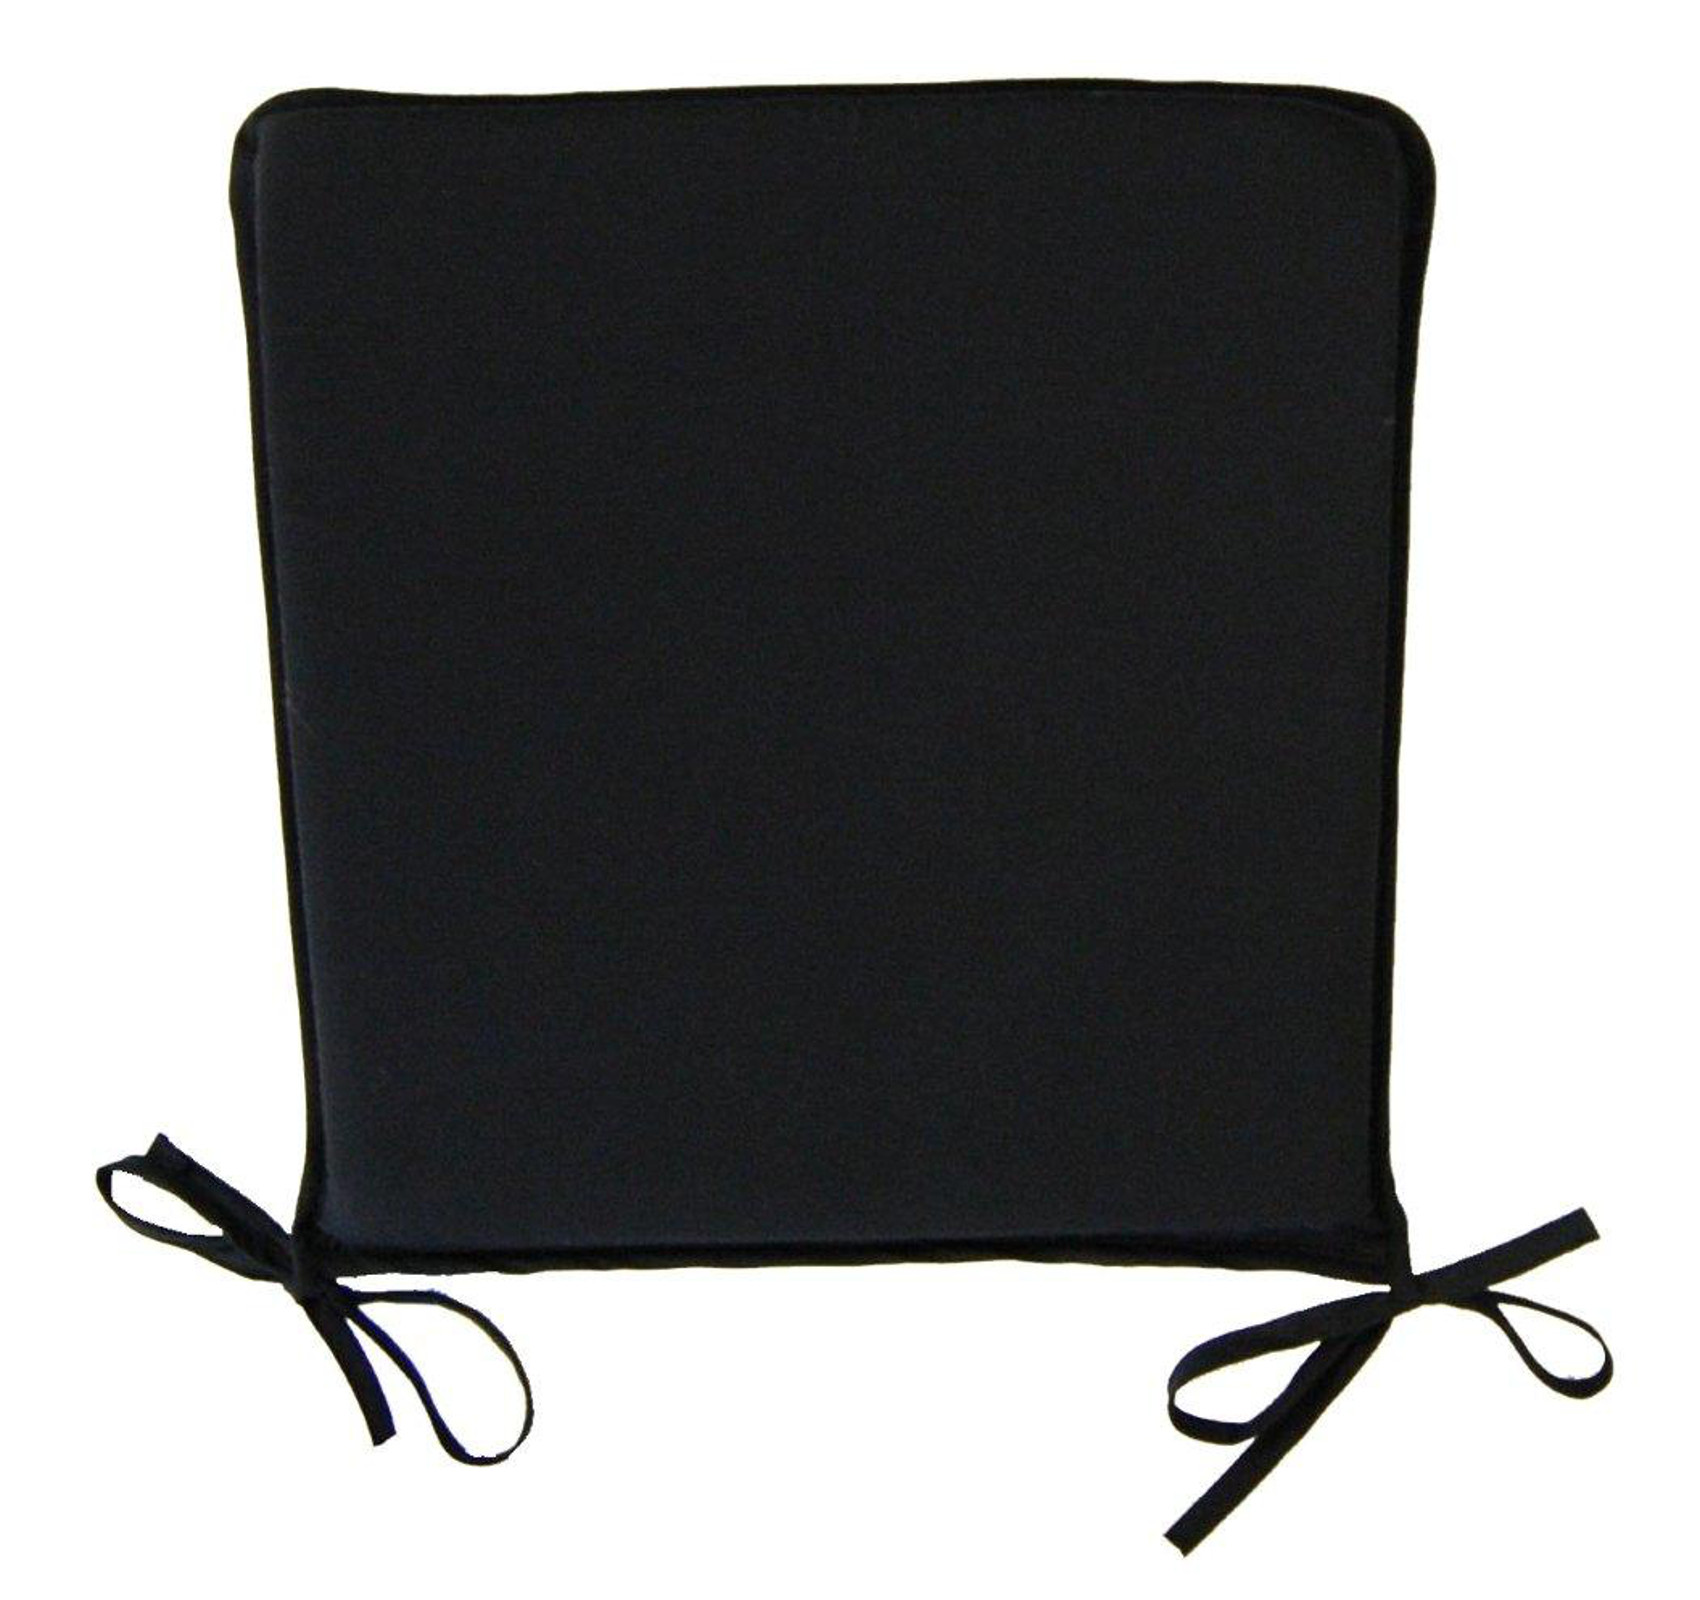 outdoor chair pad cheap chairs for sale plain square seat garden dining kitchen